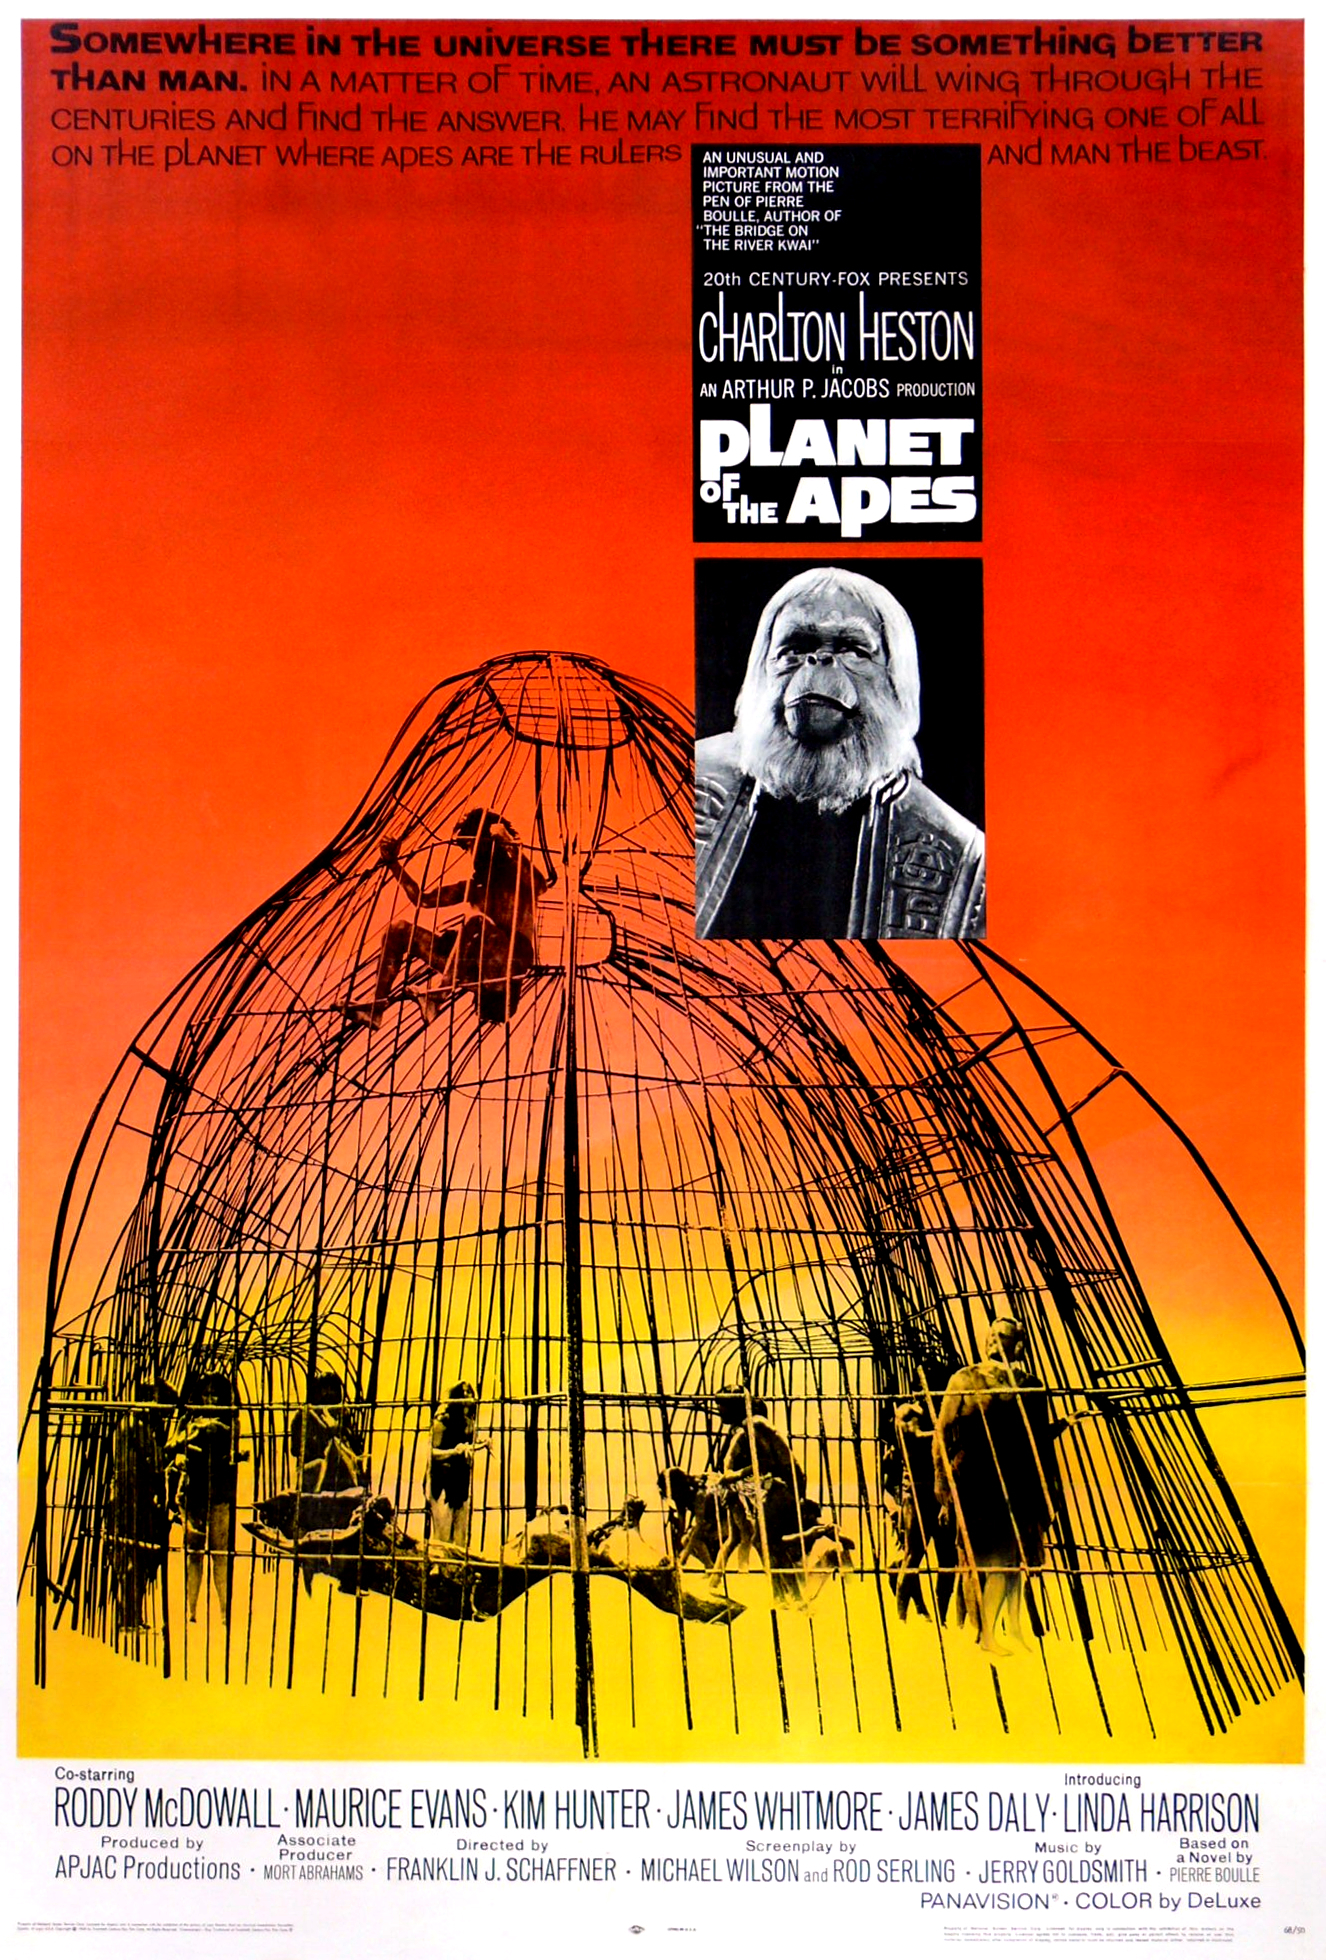 Rise of the planet of the apes (2011) imdb.